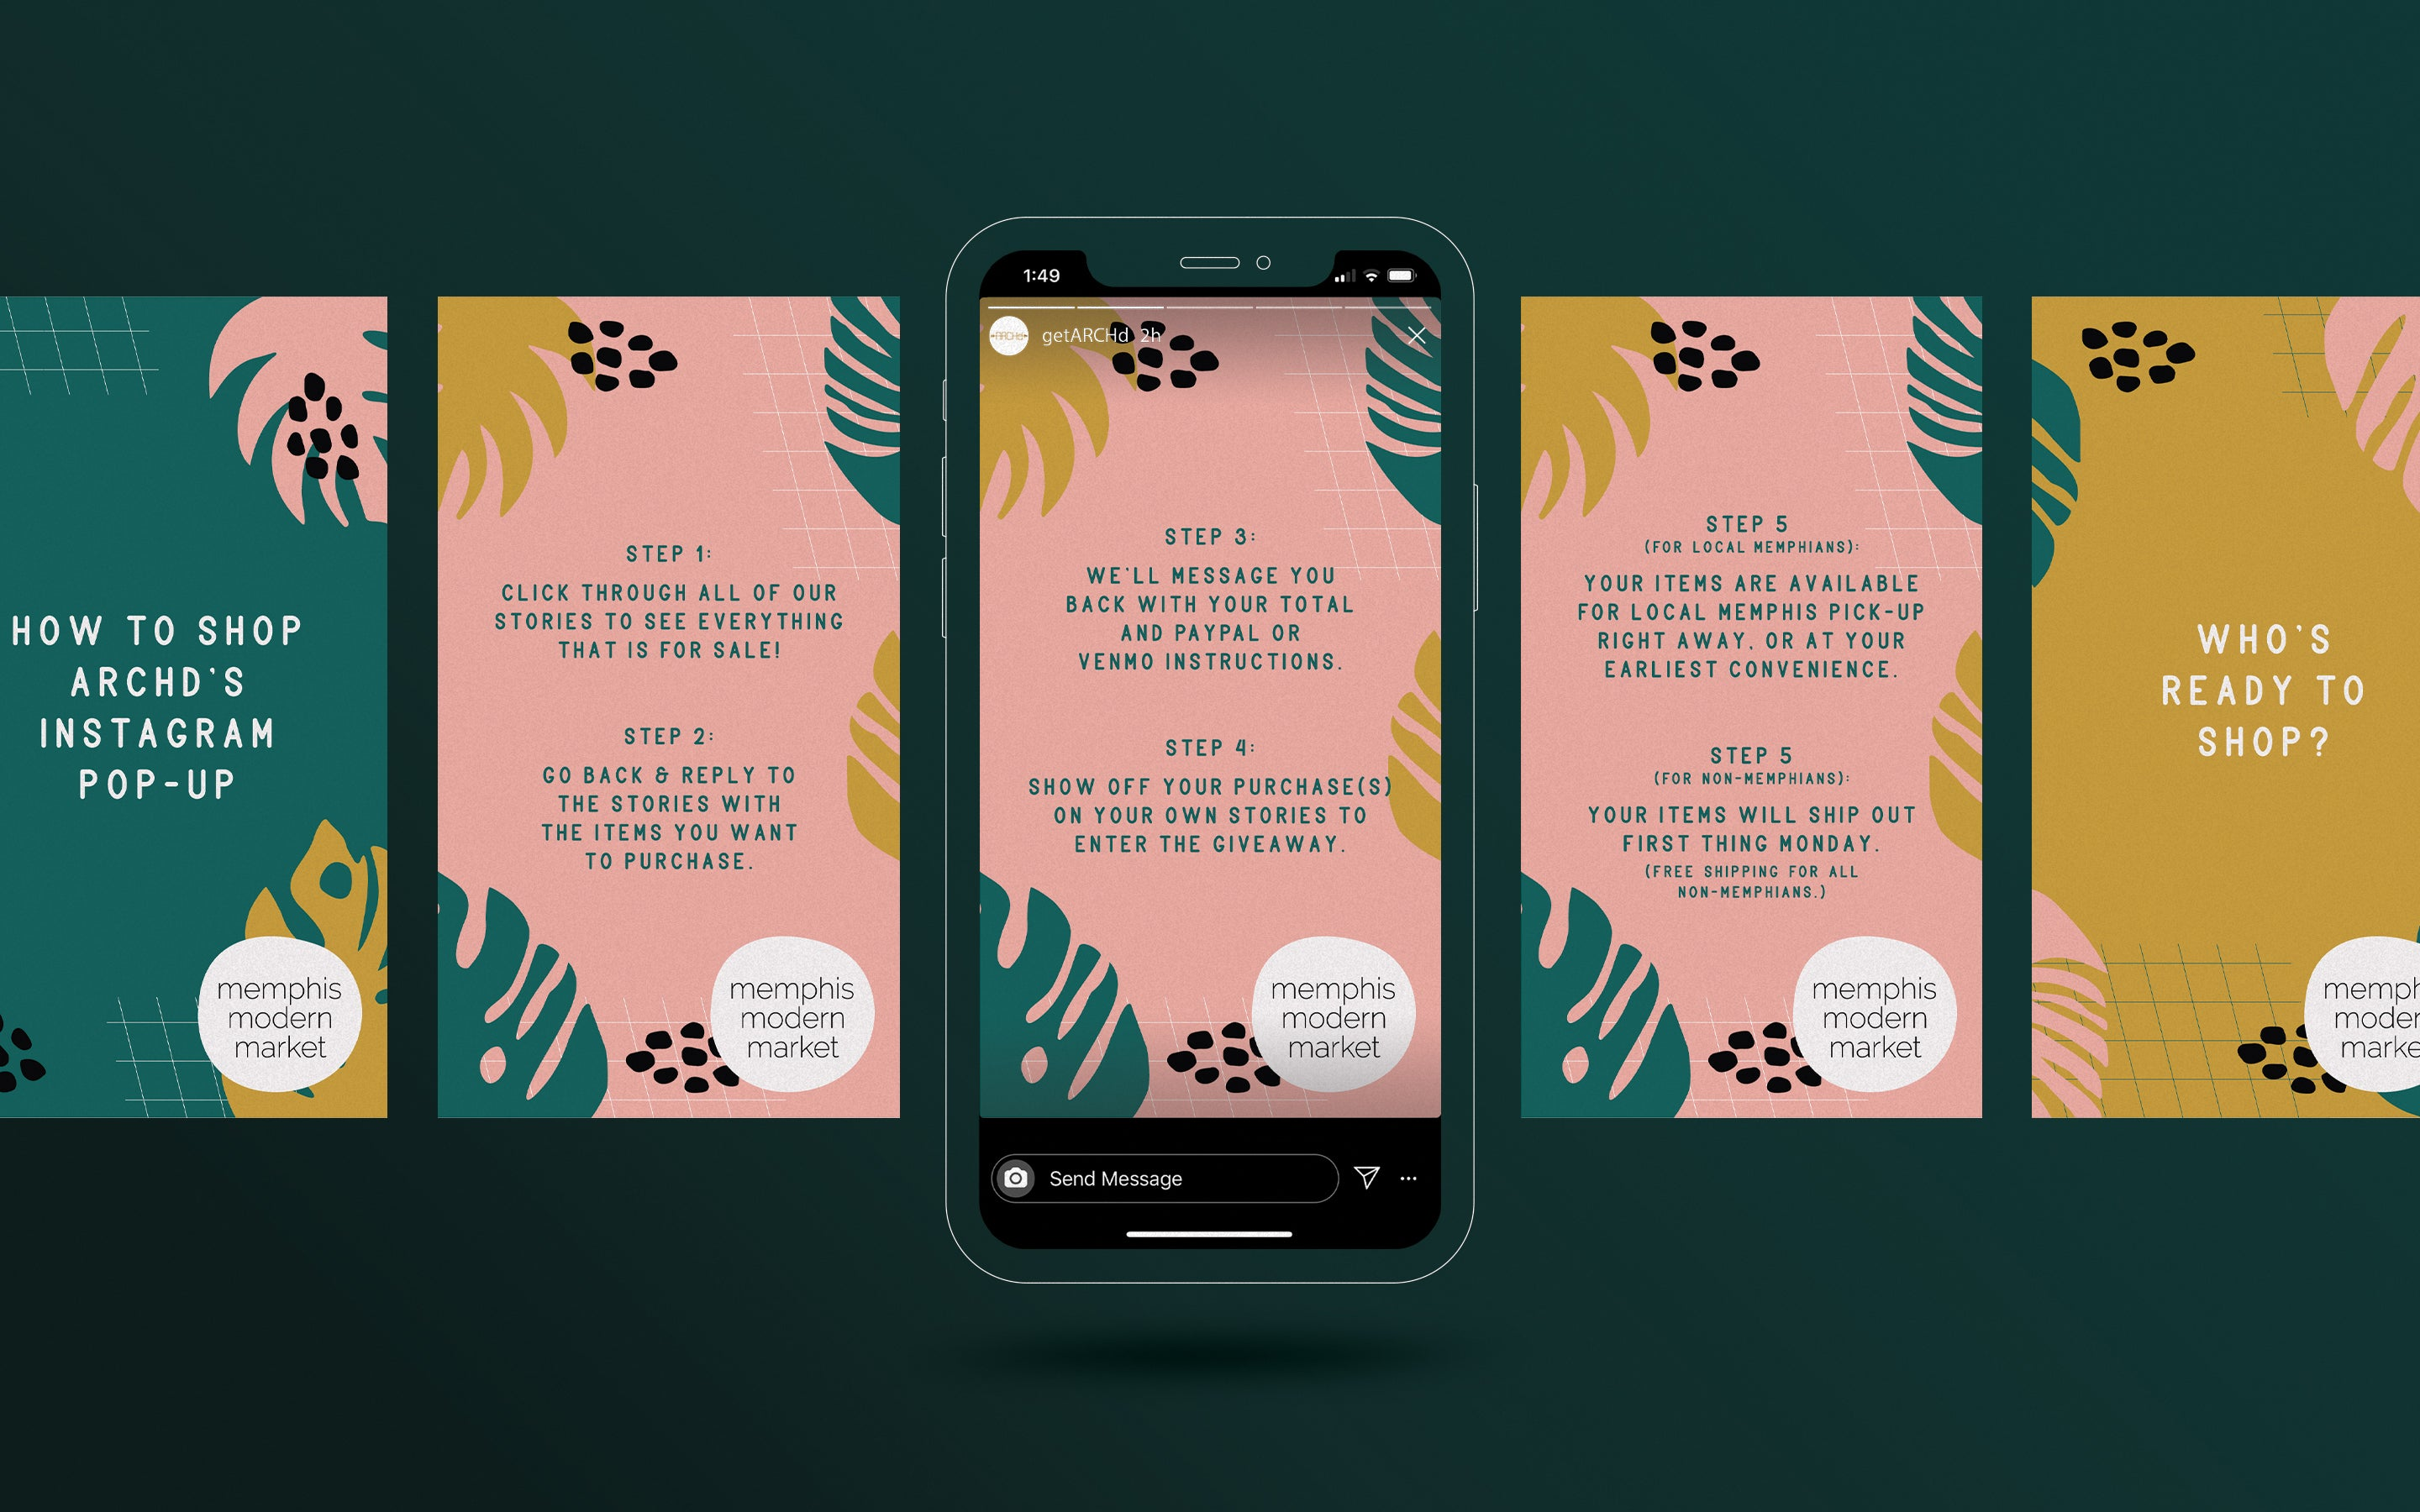 Instagram Story pop-up shop template designs